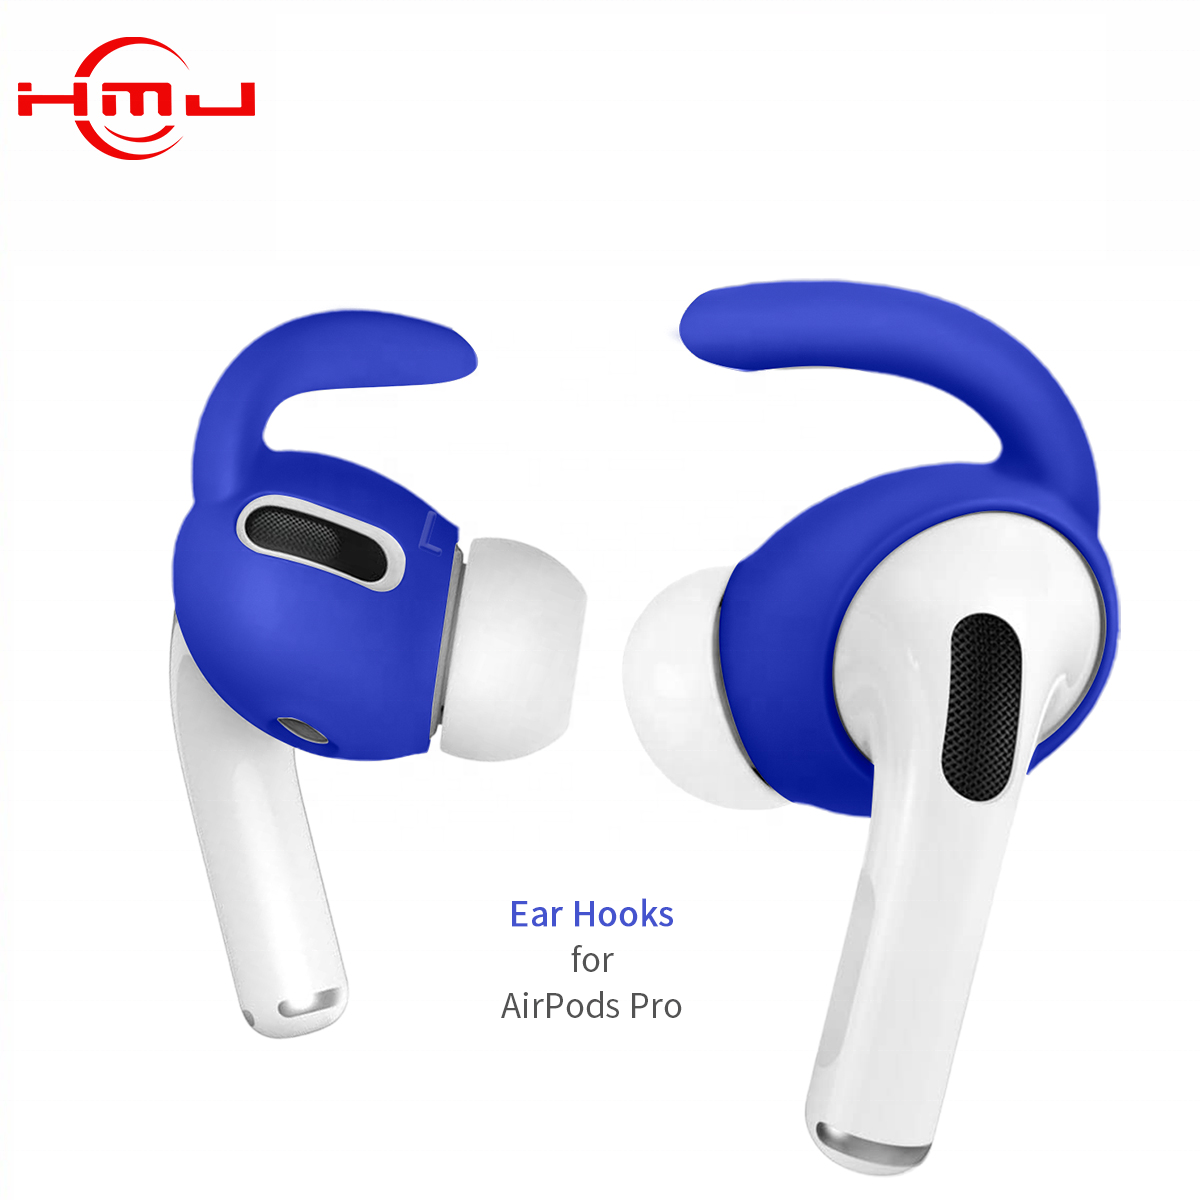 Soft Silicone Ear Hooks Anti-Slip Ear Covers Ear Tips Earbuds Covers Skin Earphone Accessories for AirPods Pro